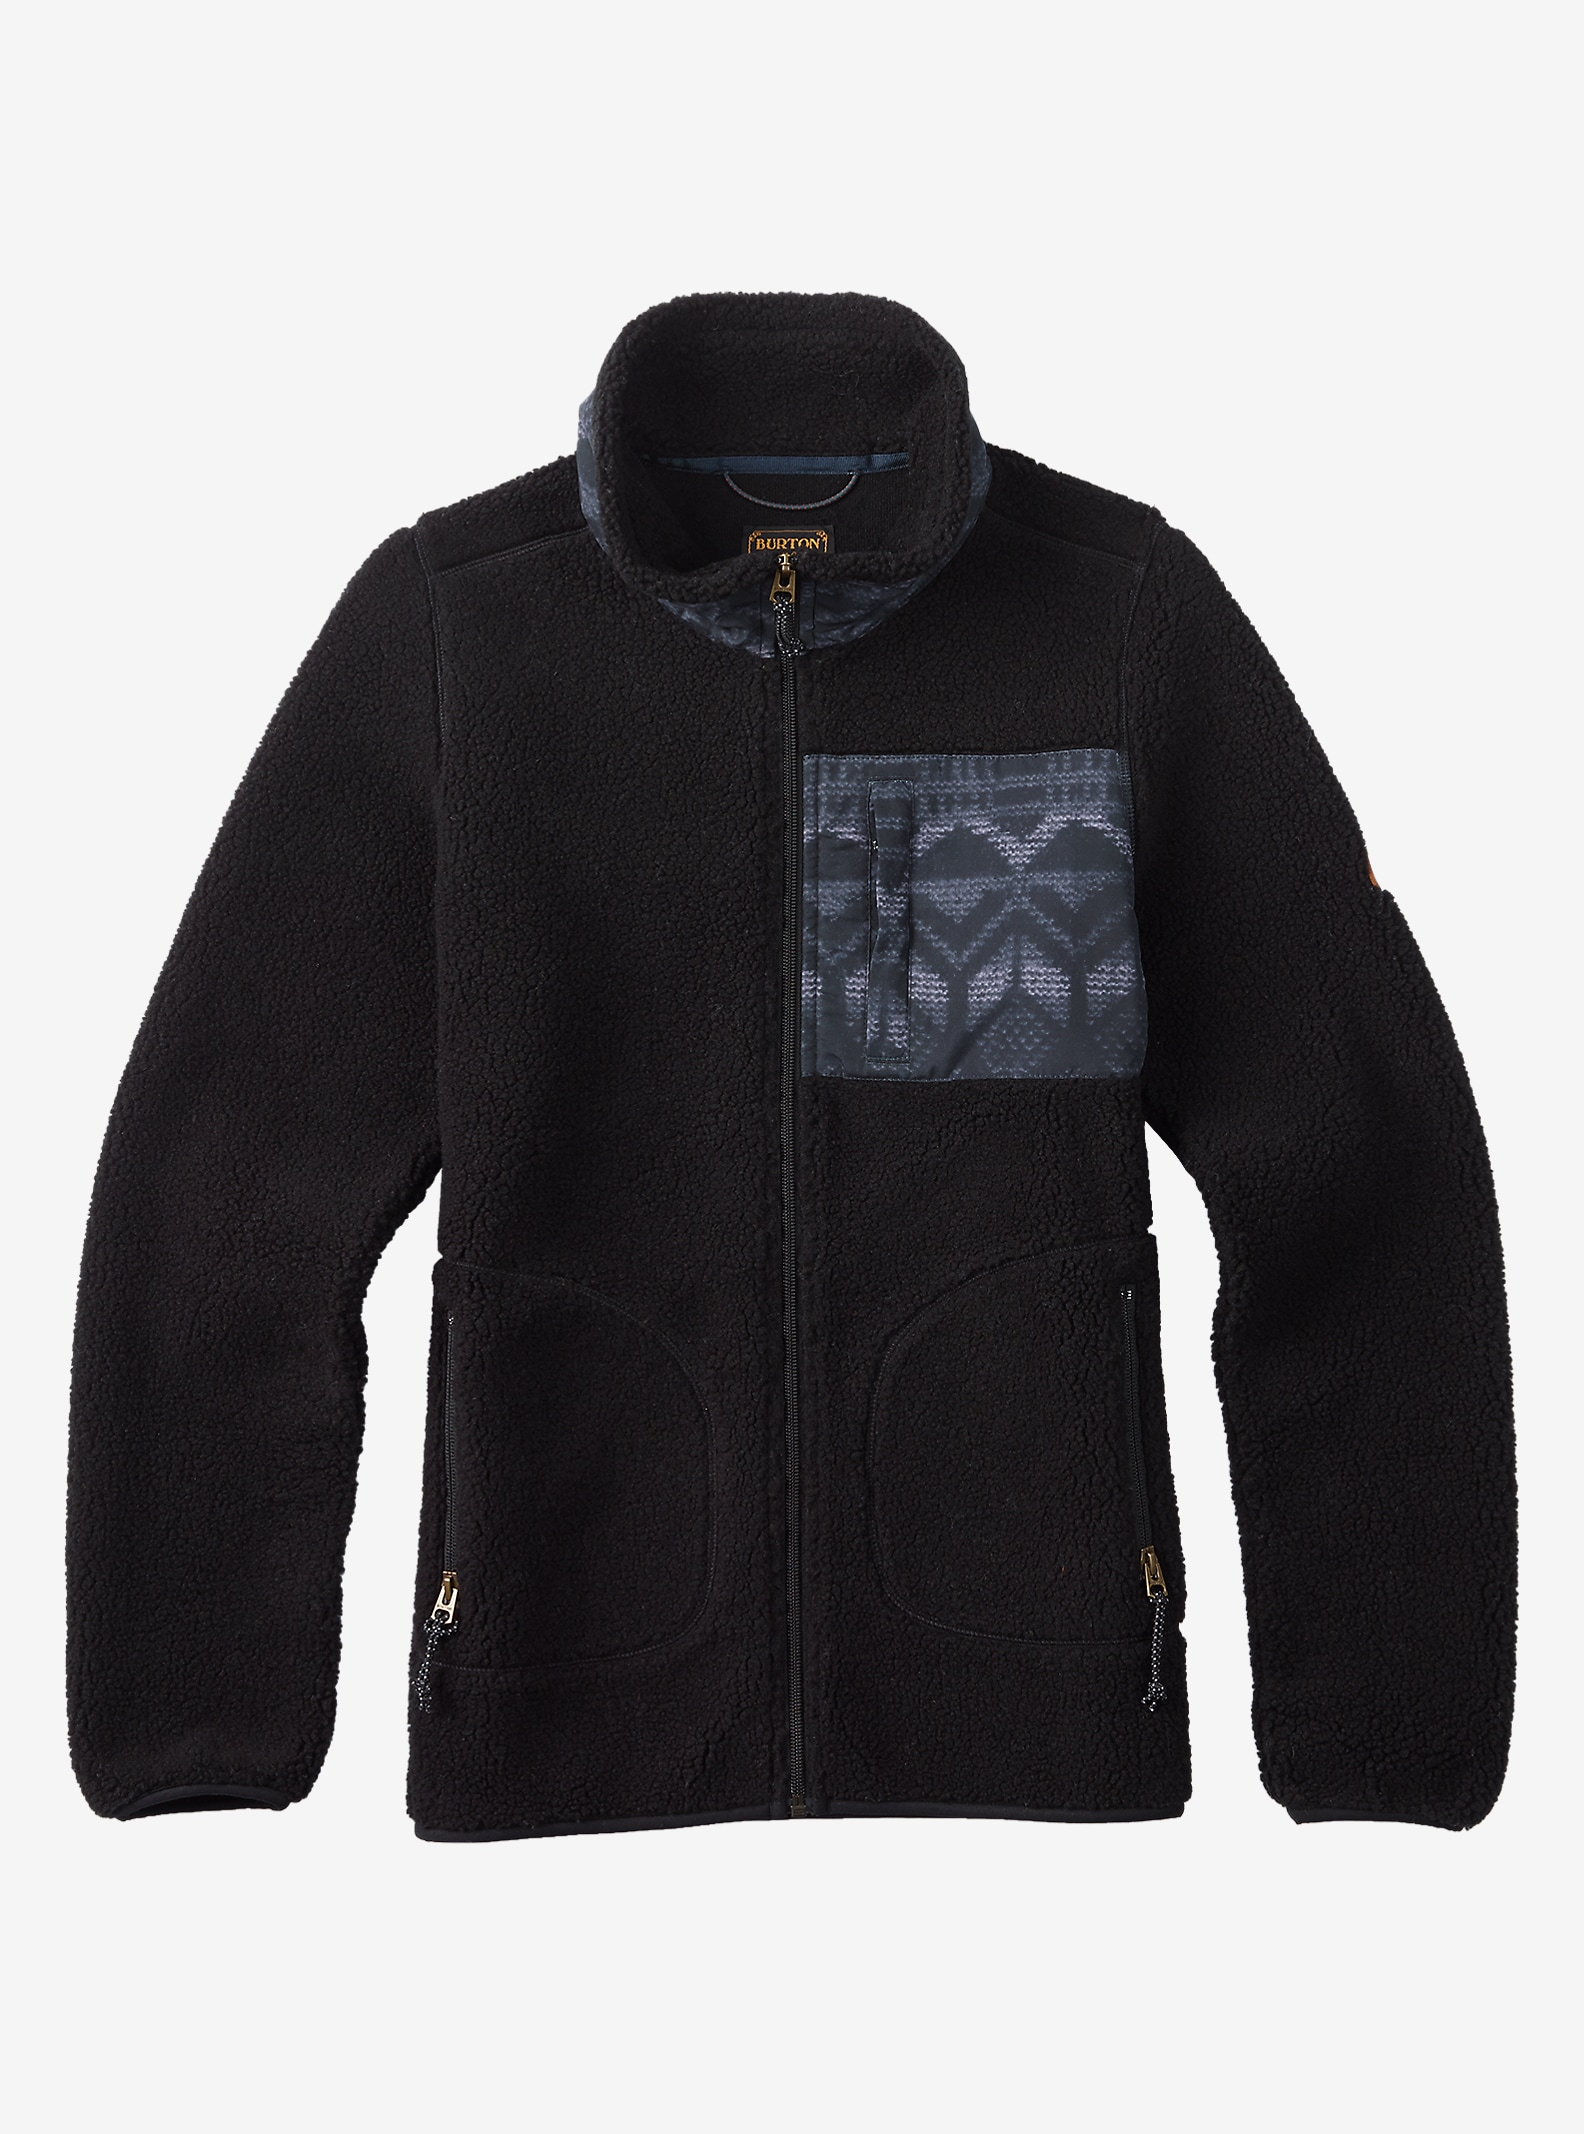 Burton Bombay Full-Zip Fleece shown in True Black